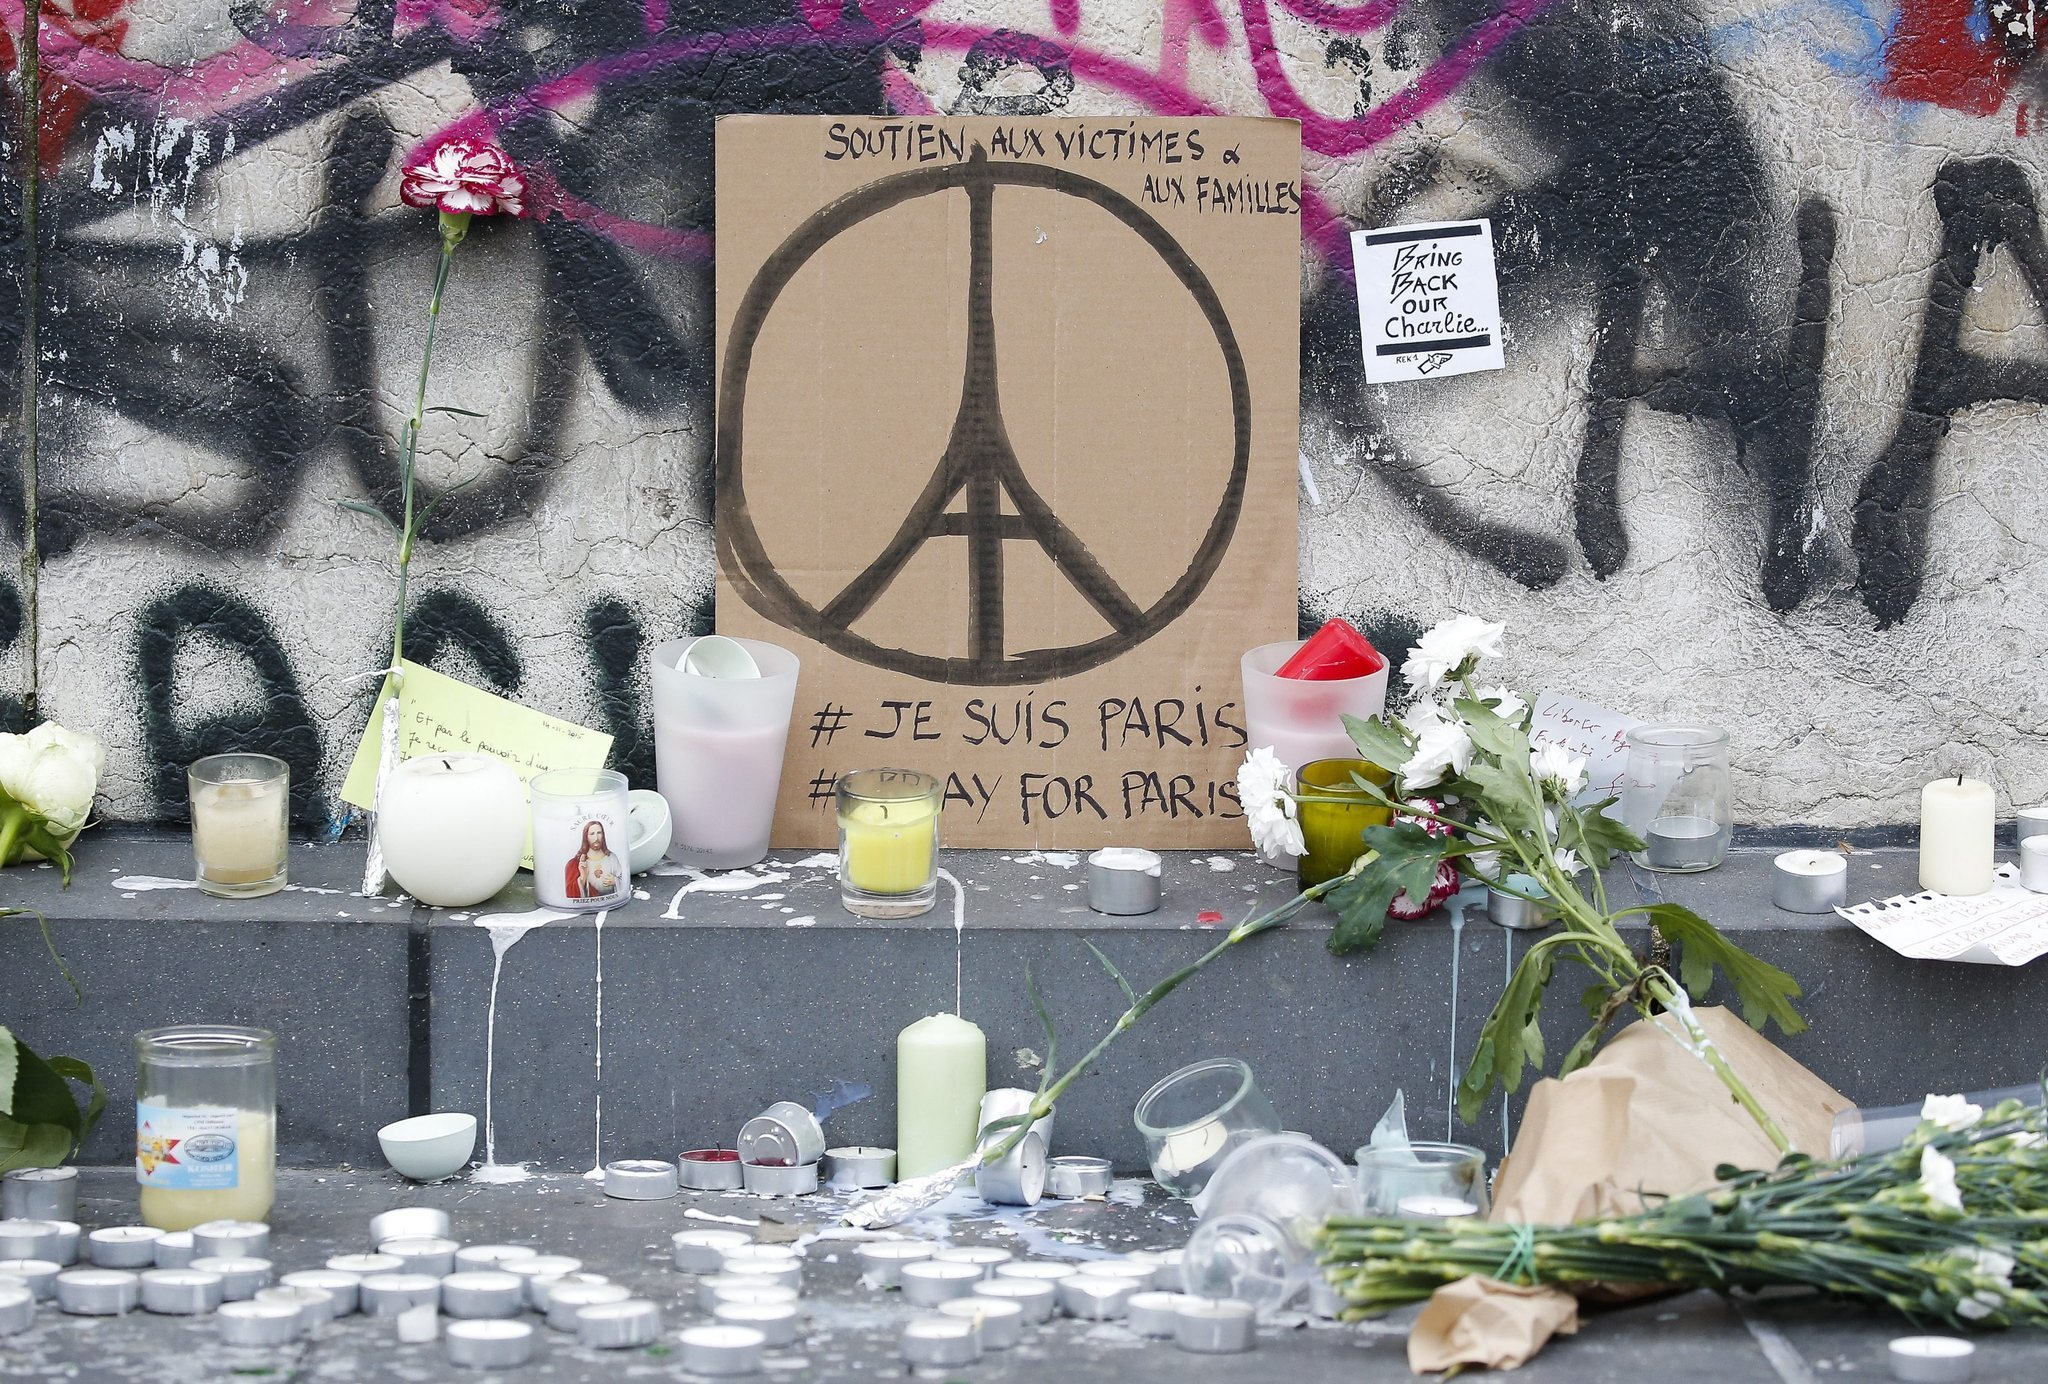 Memorial in Paris pays tribute to those killed in Friday's terror attacks. (Julien Warnand / EPA)